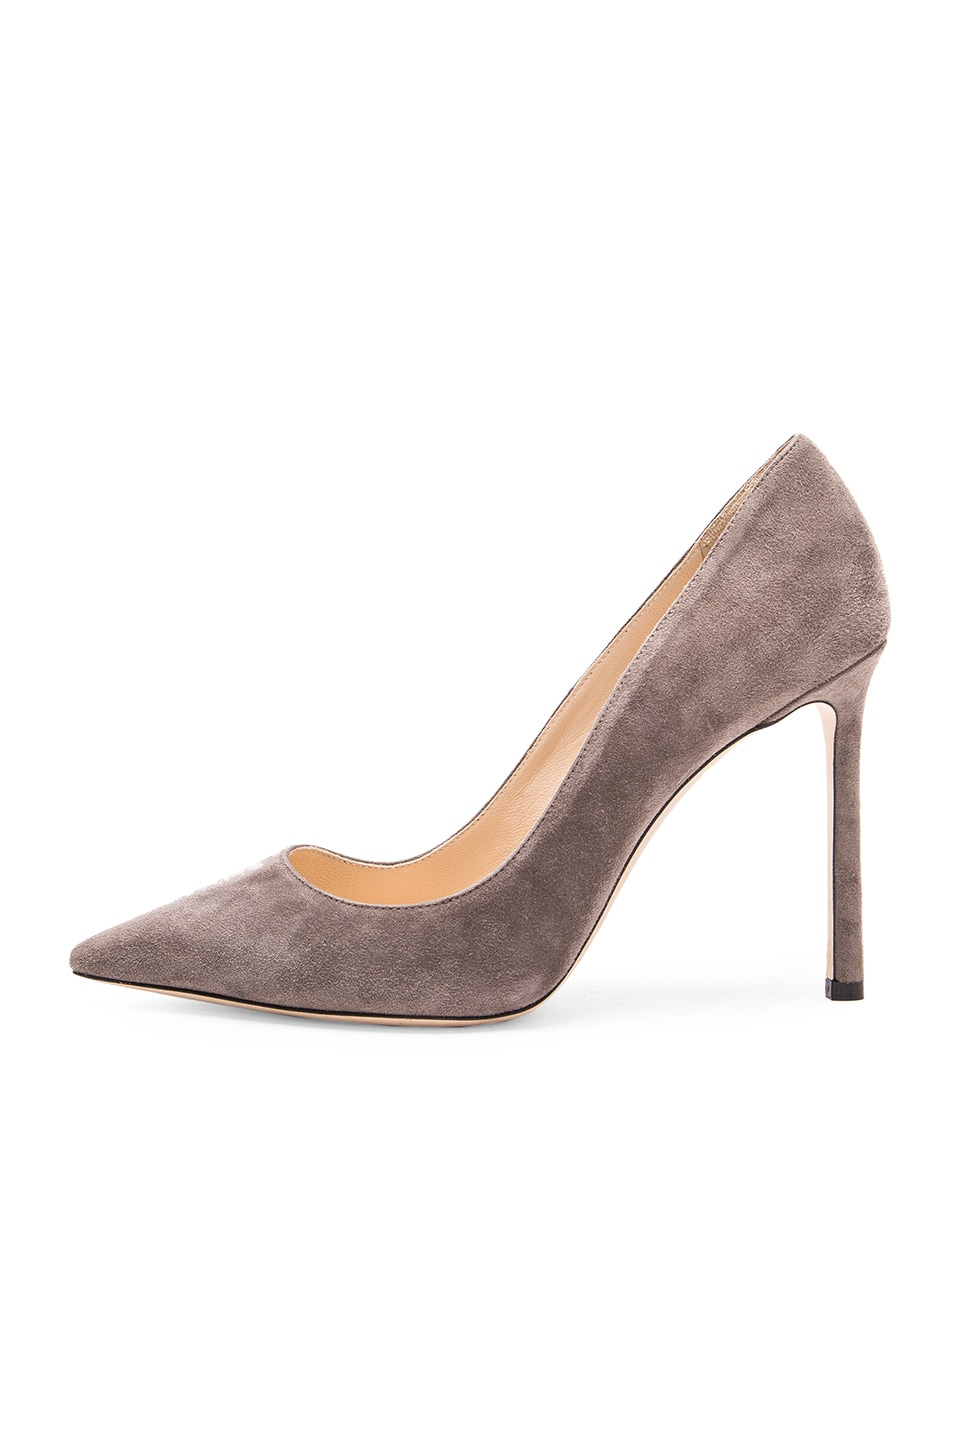 Image 5 of Jimmy Choo Suede Romy Pumps in Taupe Grey